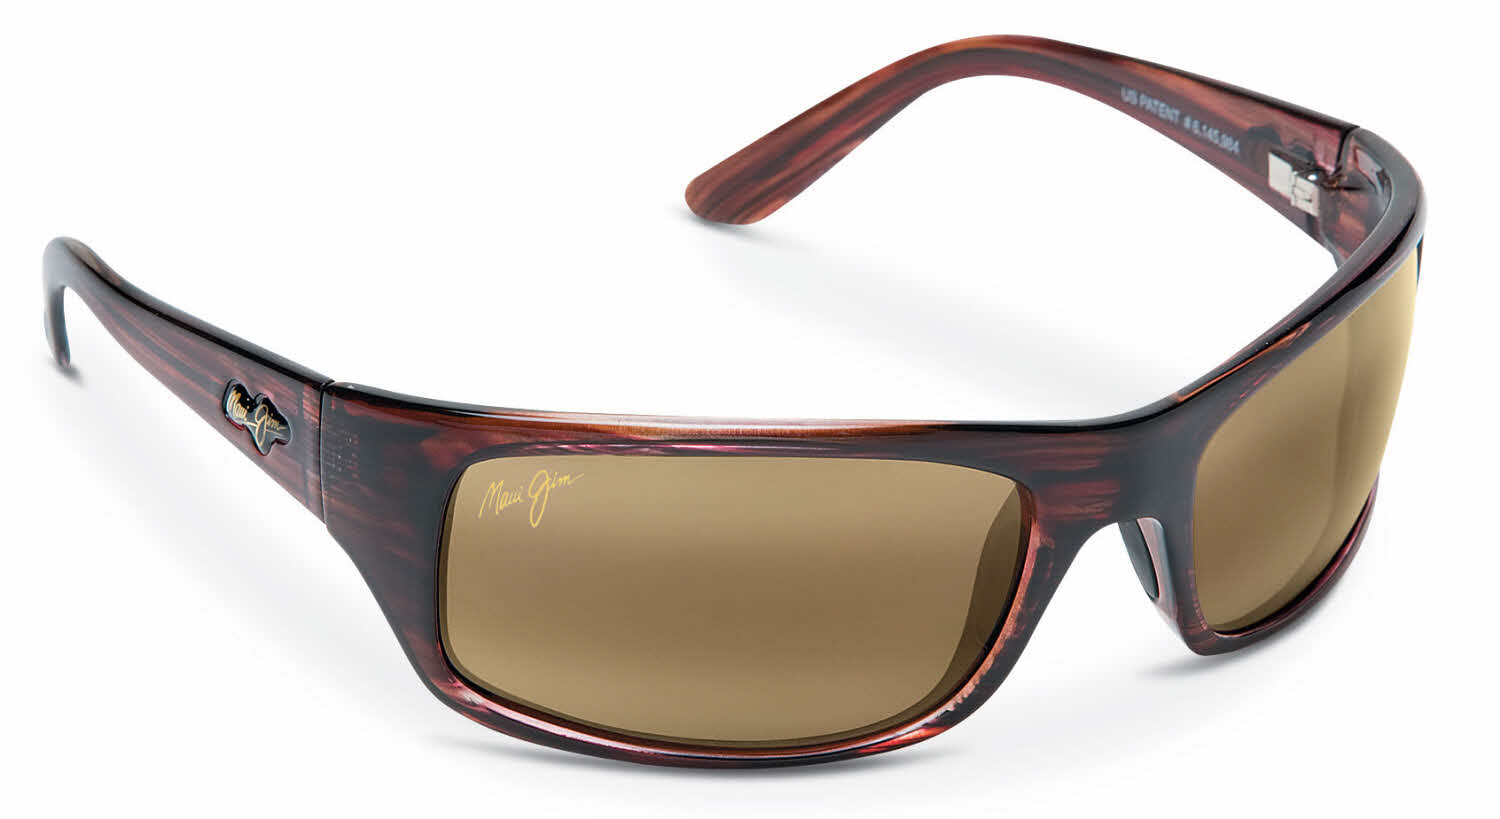 rx sunglasses online  Maui Jim Peahi-202 Prescription Sunglasses